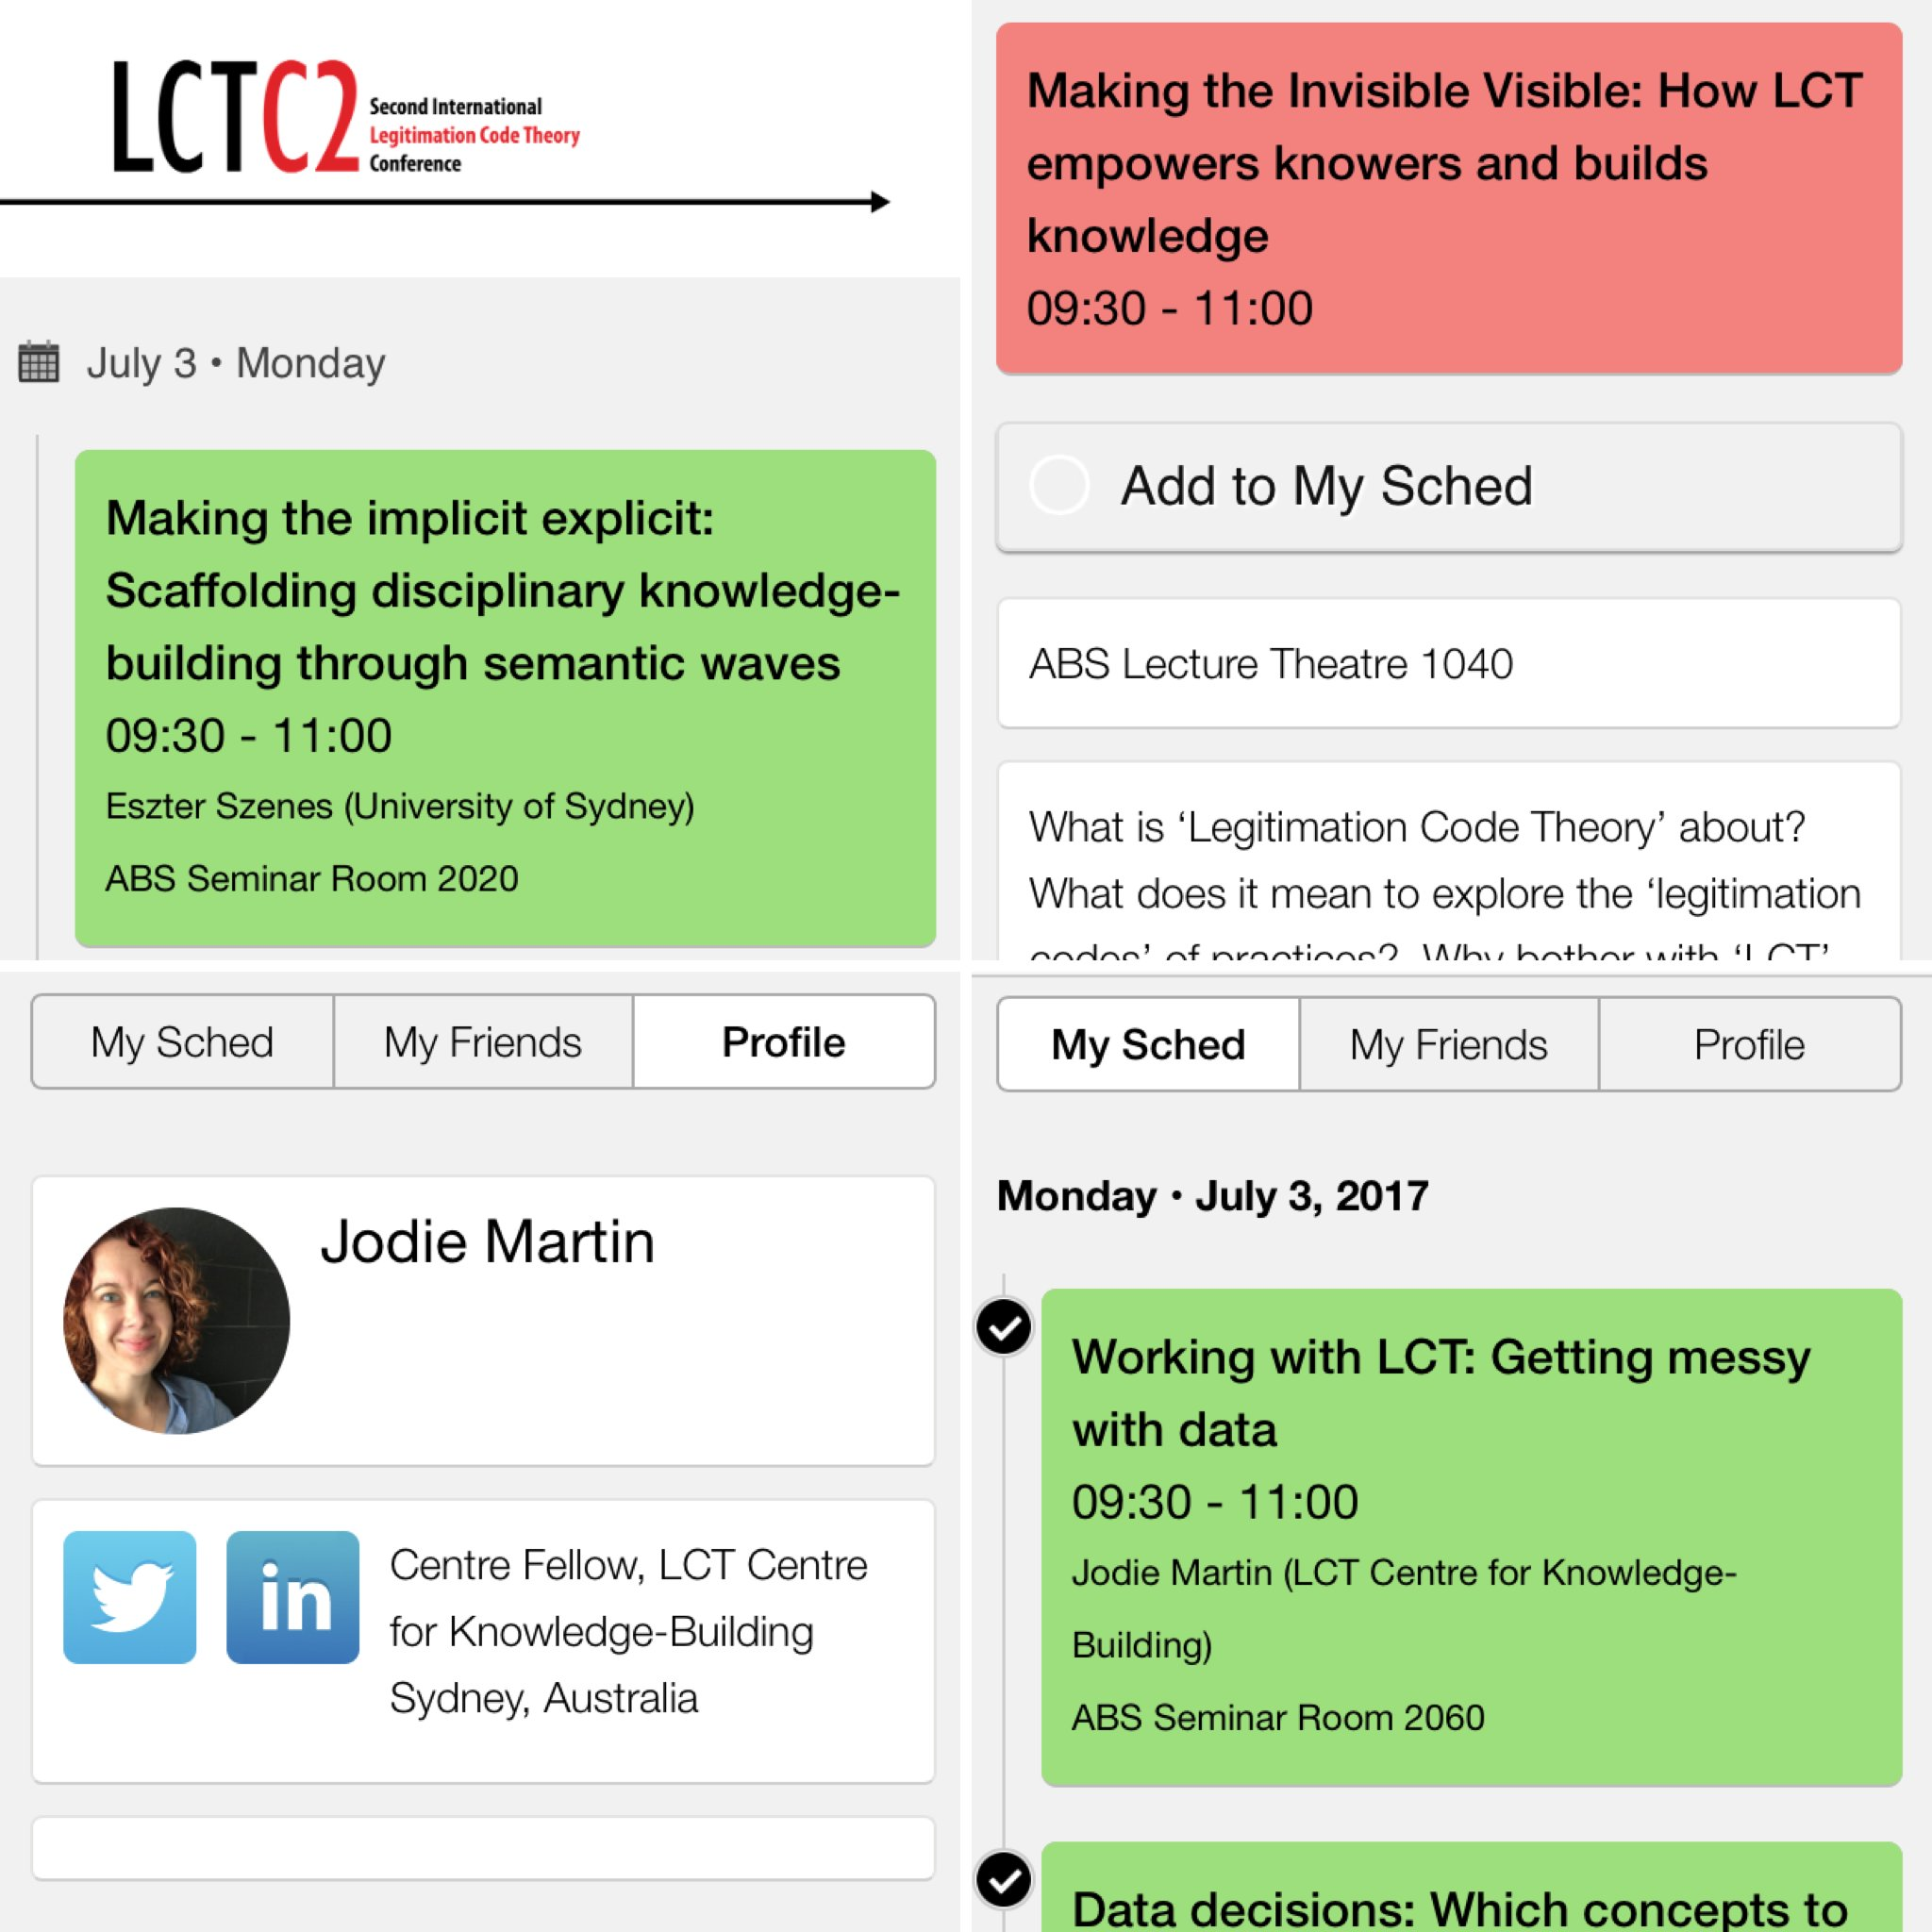 EXCITING NEWS! LCTC2 has an app! Conference participants can now access the program with ALL abstracts through https://t.co/InBxsziNLY! https://t.co/0eoaImFOii